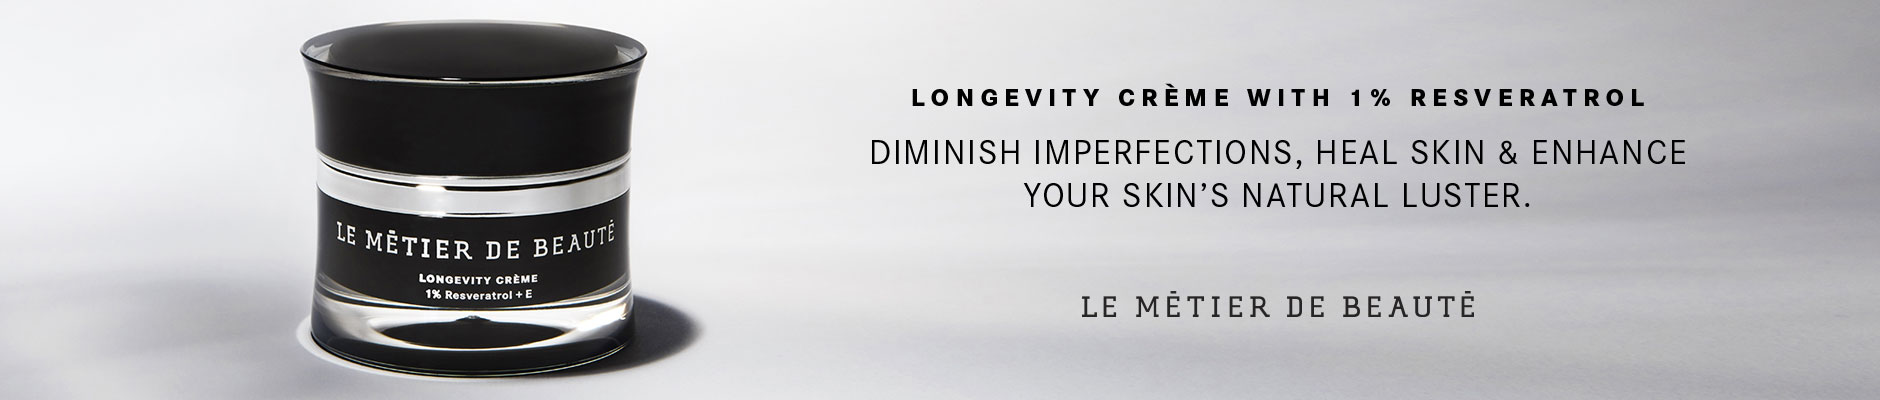 Longevity Creme With 1% Resveratrol: Diminish imperfections, heal skin, & enhance your skin's natural luster. - Le Metier De Beaute